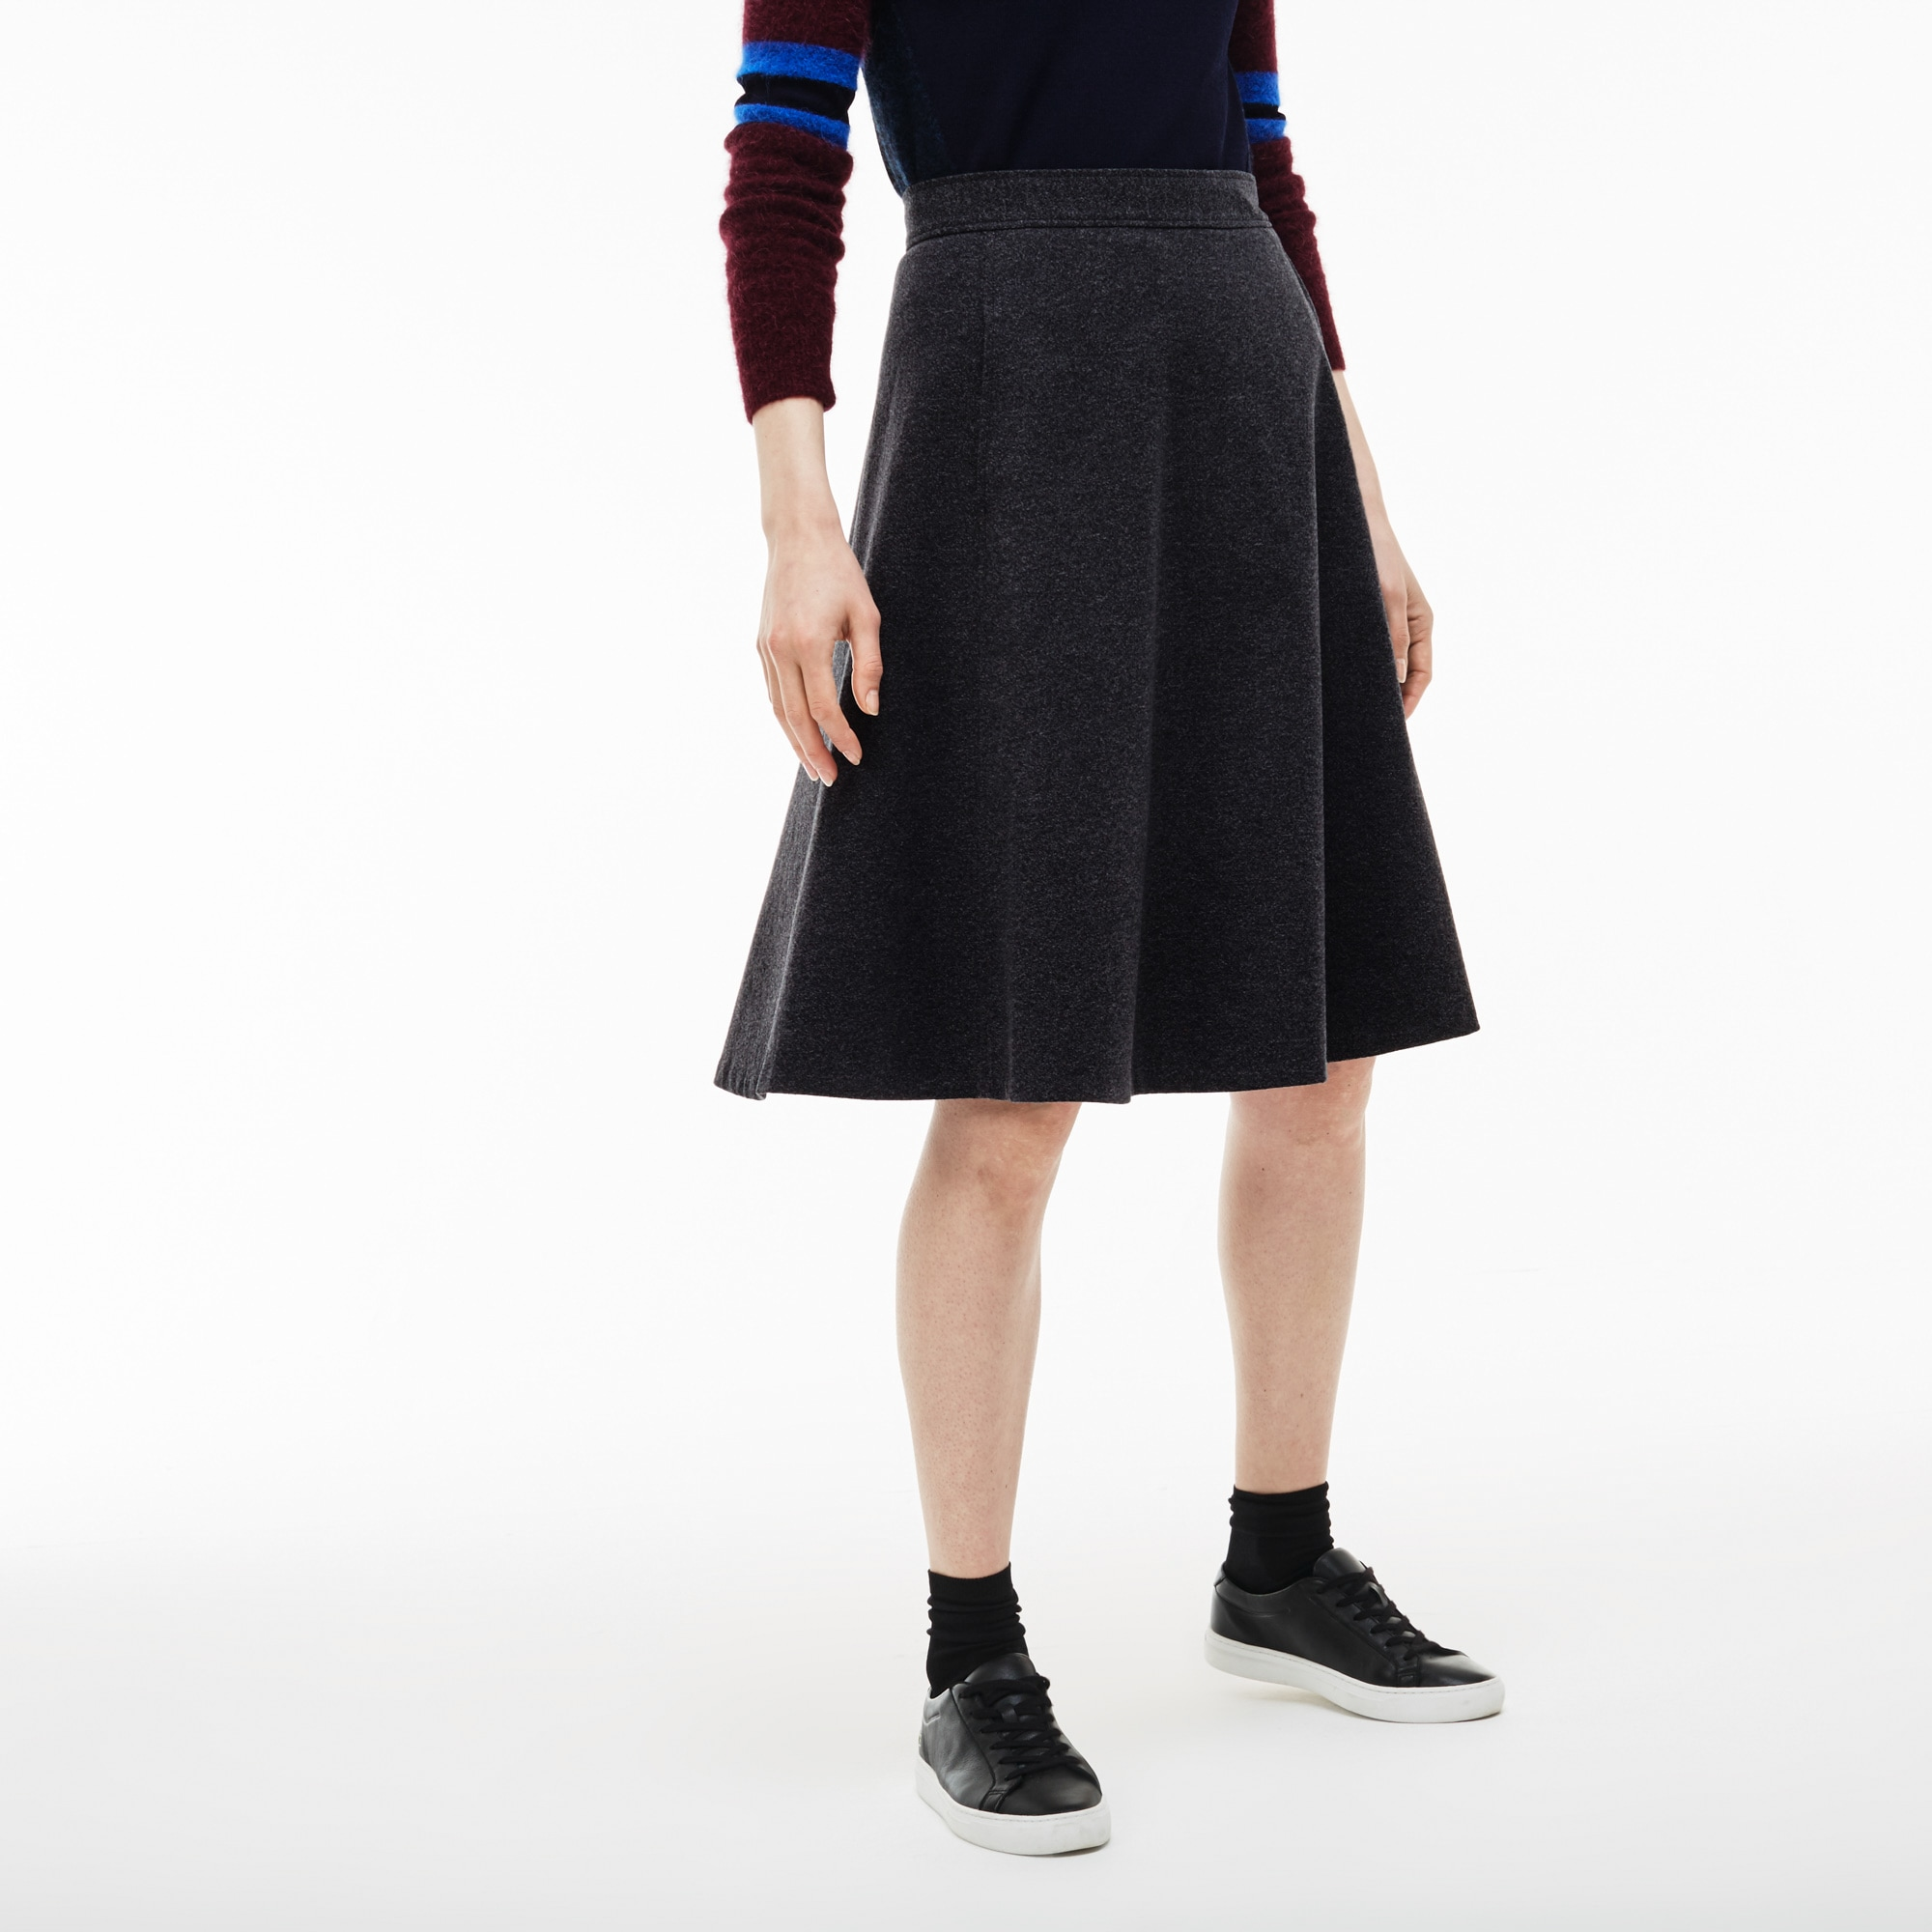 Women's Stretch Wool And Cotton Tweed A-line Skirt